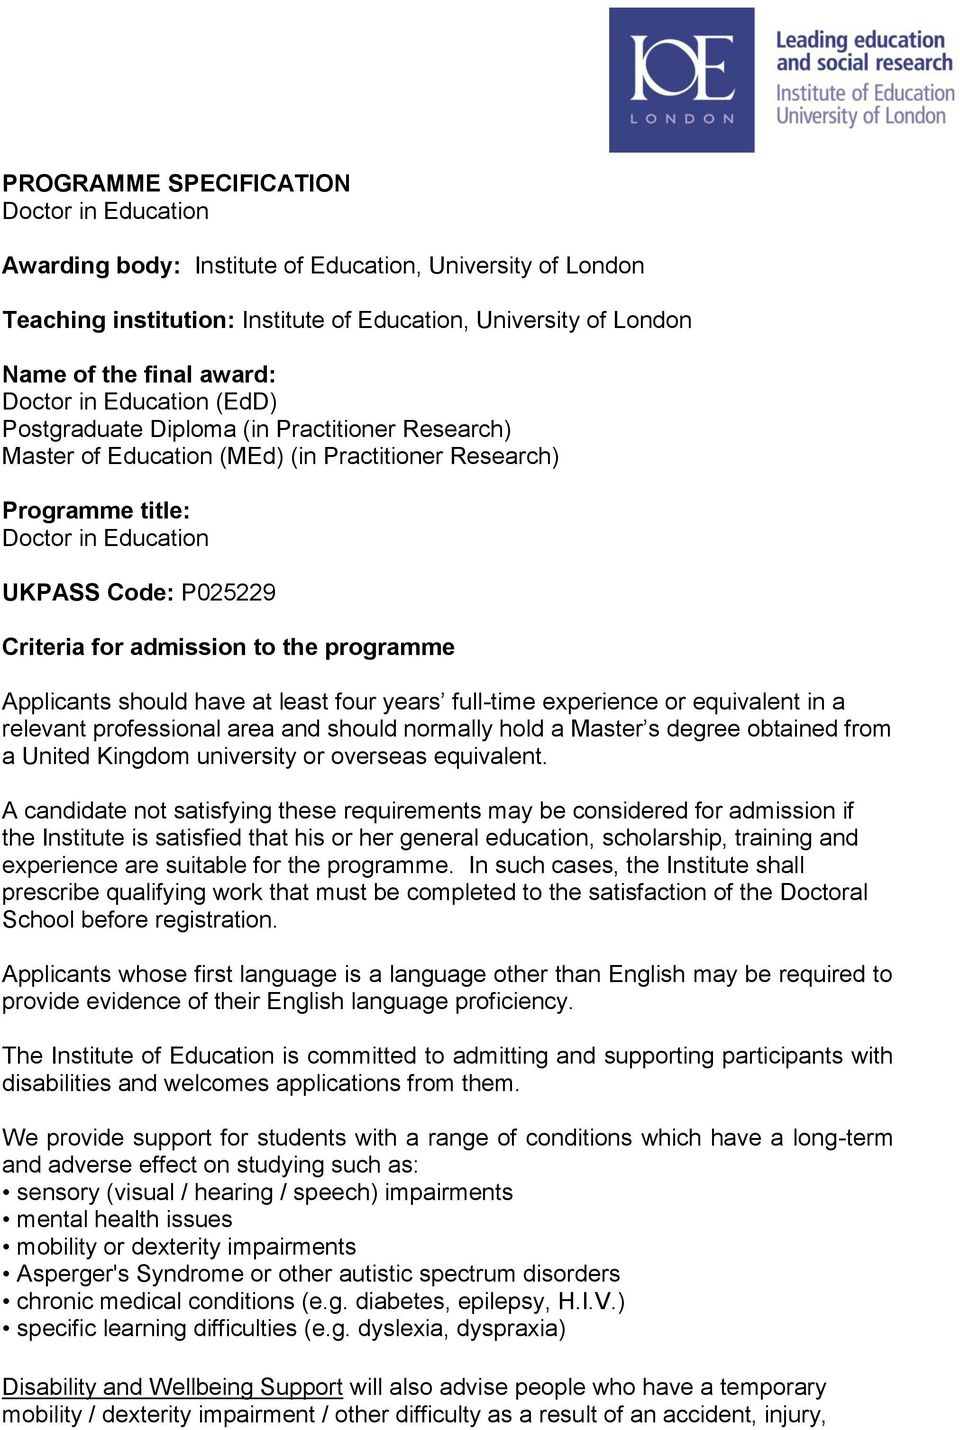 admission to the programme Applicants should have at least four years full-time experience or equivalent in a relevant professional area and should normally hold a Master s degree obtained from a